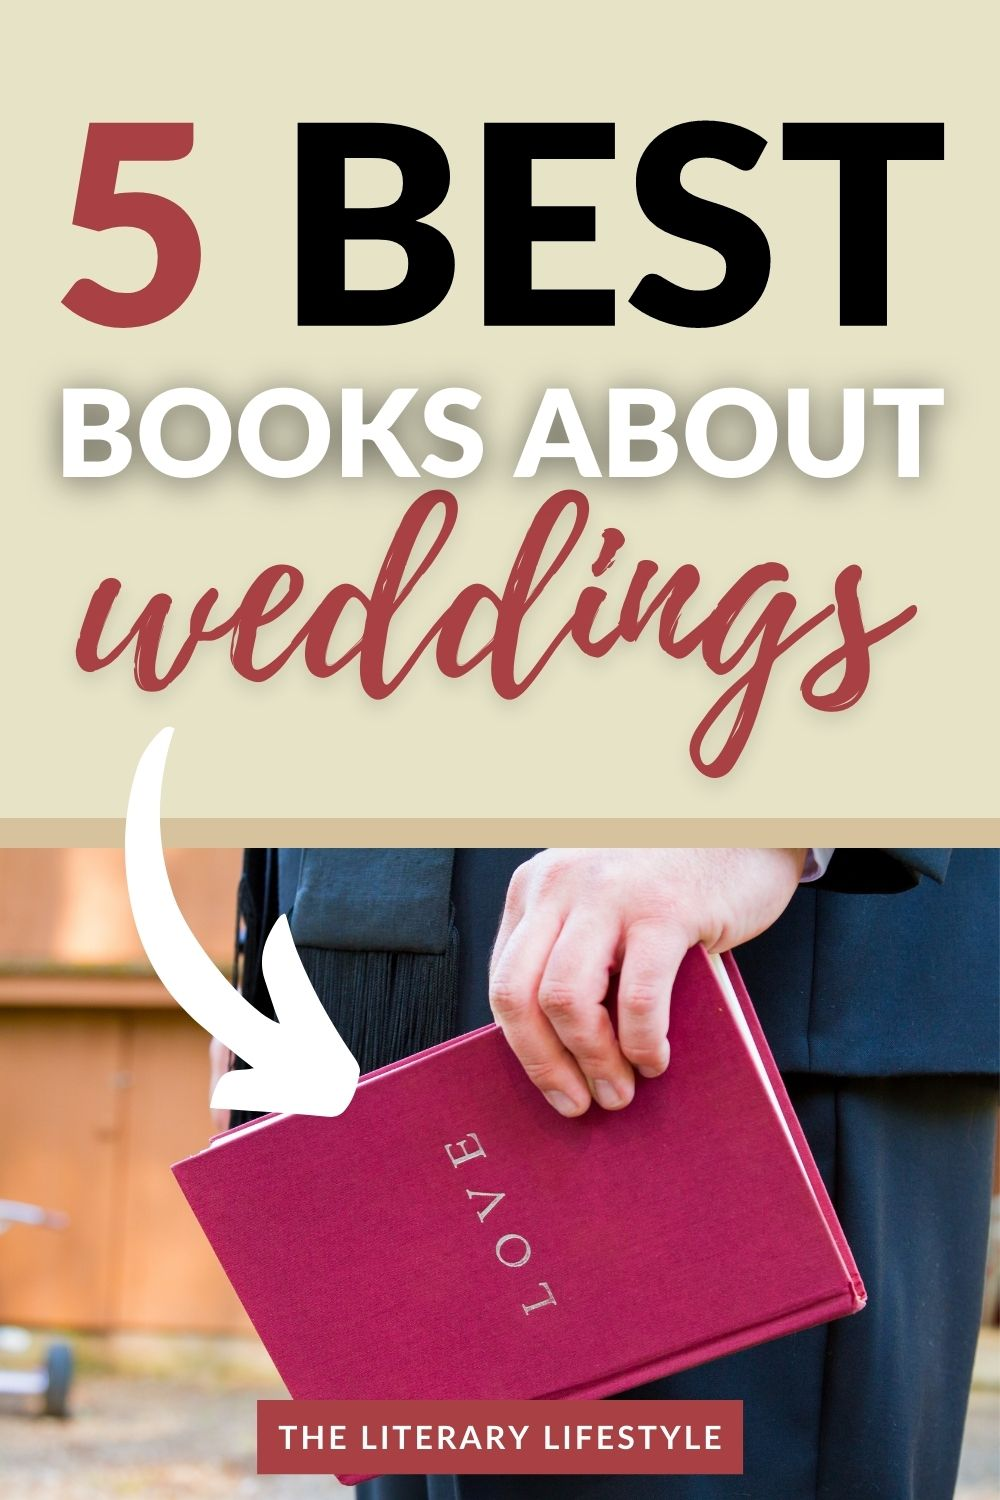 best fictional books about weddings